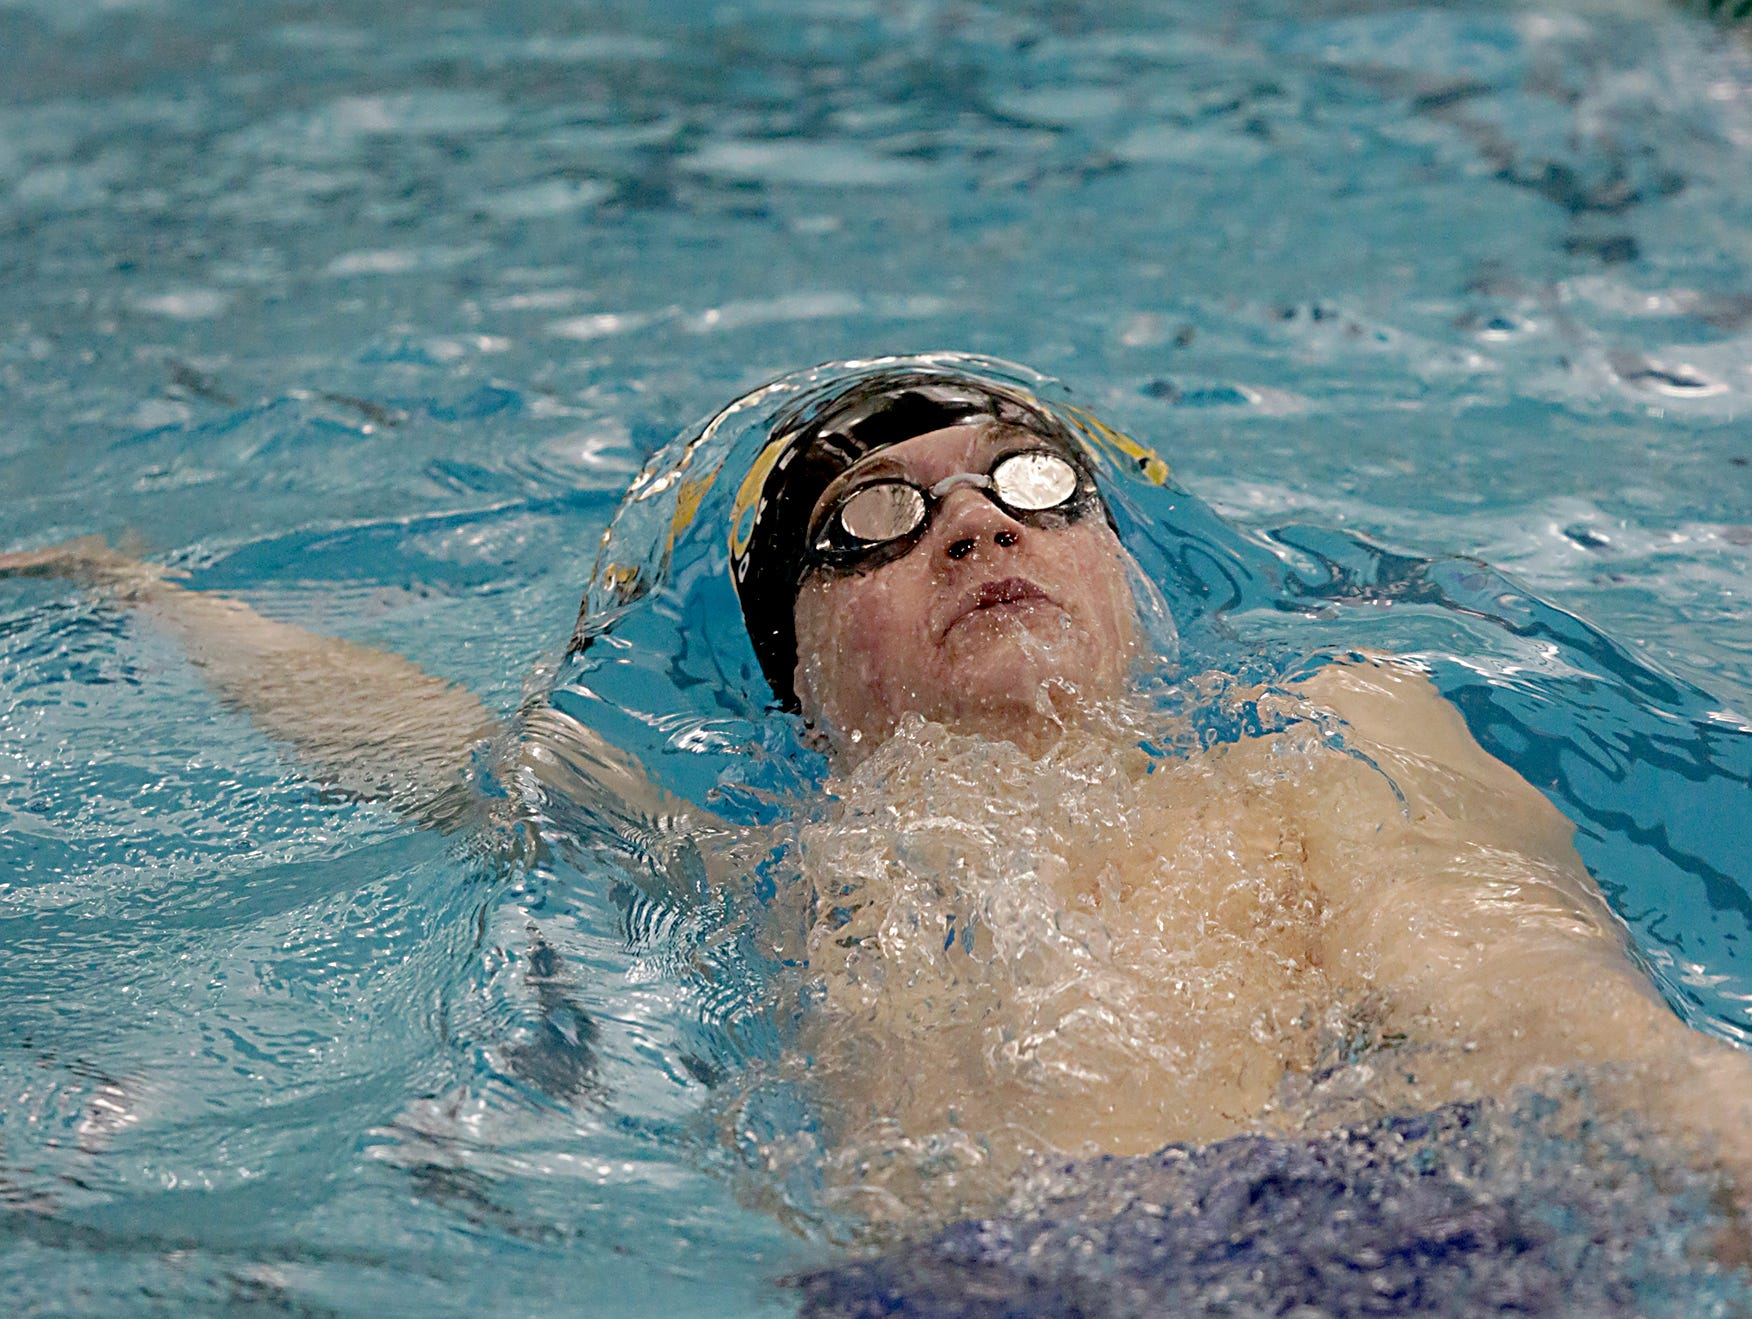 Keegan Veraldo, from Sycamore, competes in the 200-yard IM during the Division I and Division II sectionals at Mason High School in Mason Friday, Feb. 8, 2019.